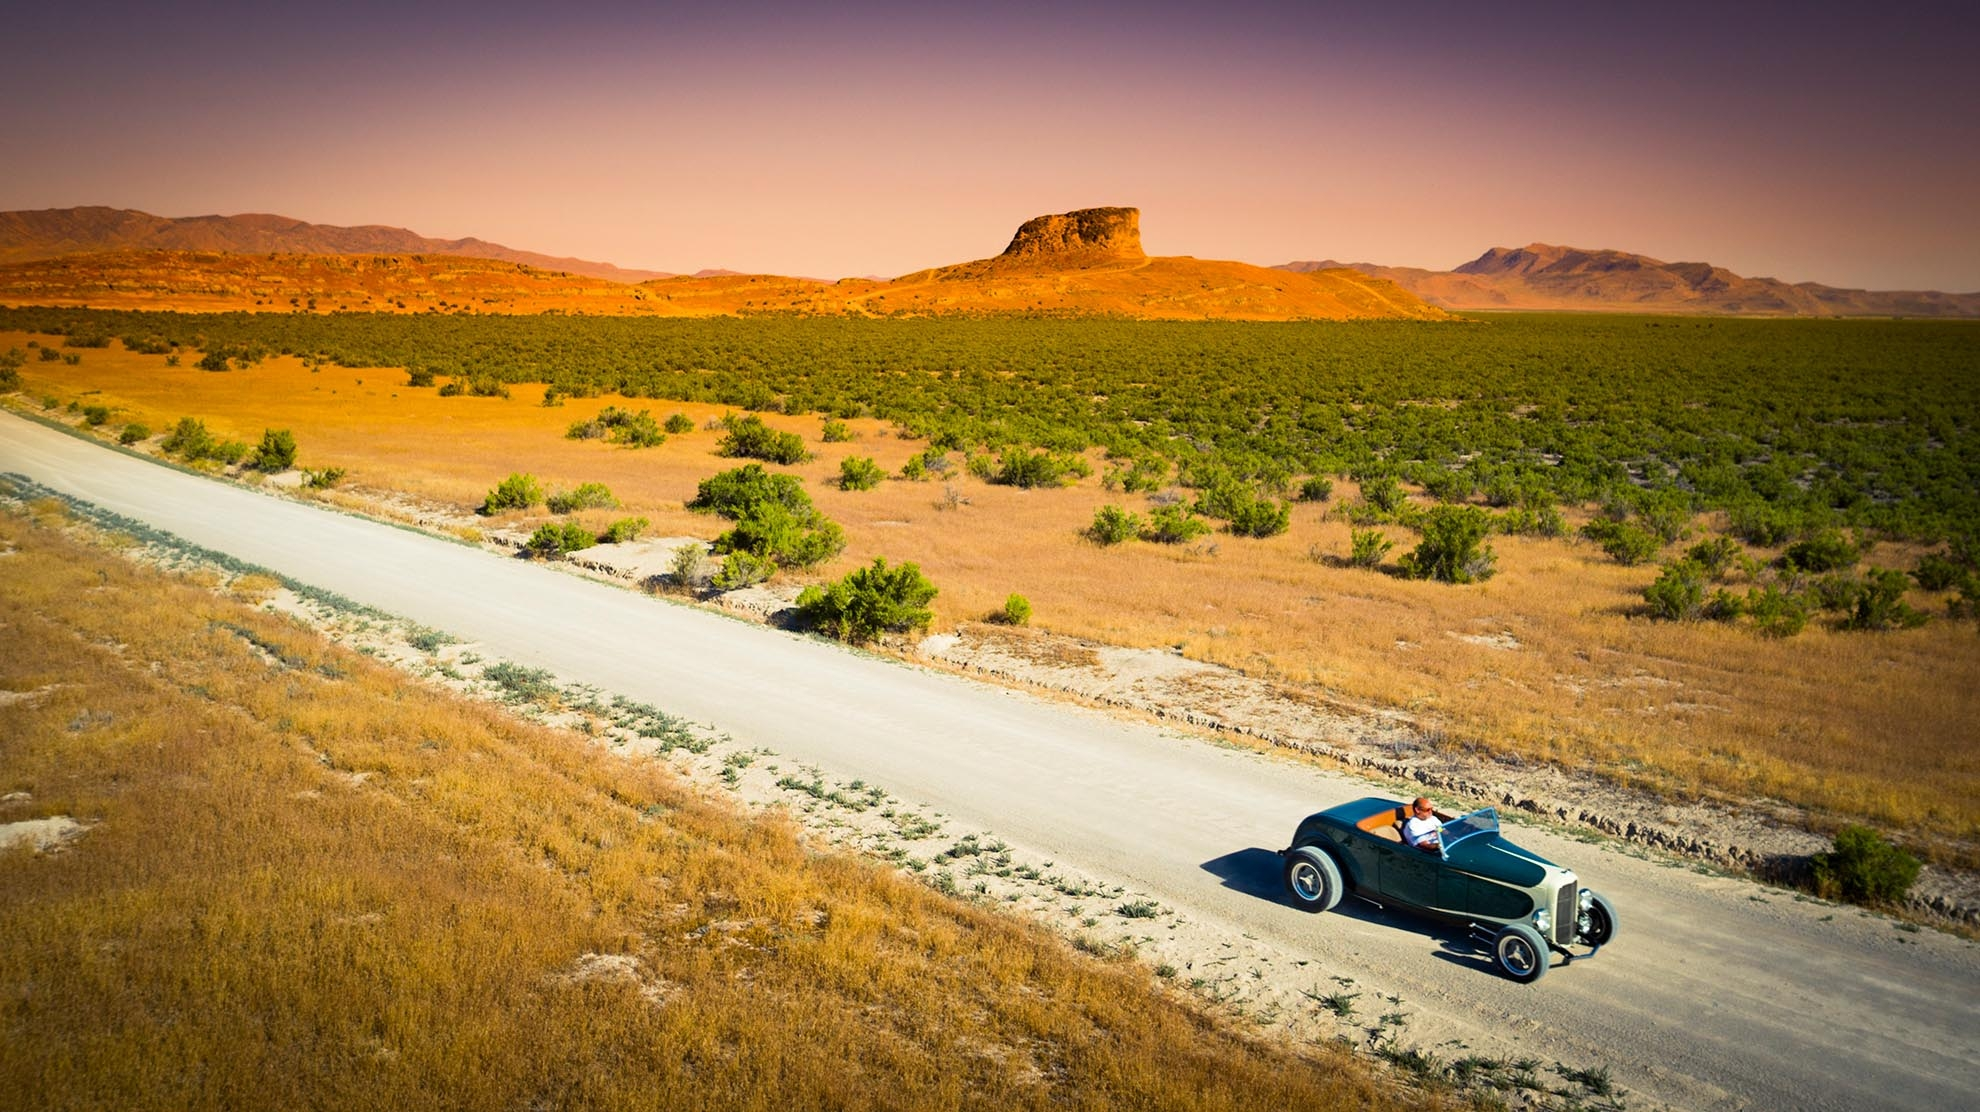 Drone Photograph of Racer Ray in Hot Rod on dirt road in Utah Desert